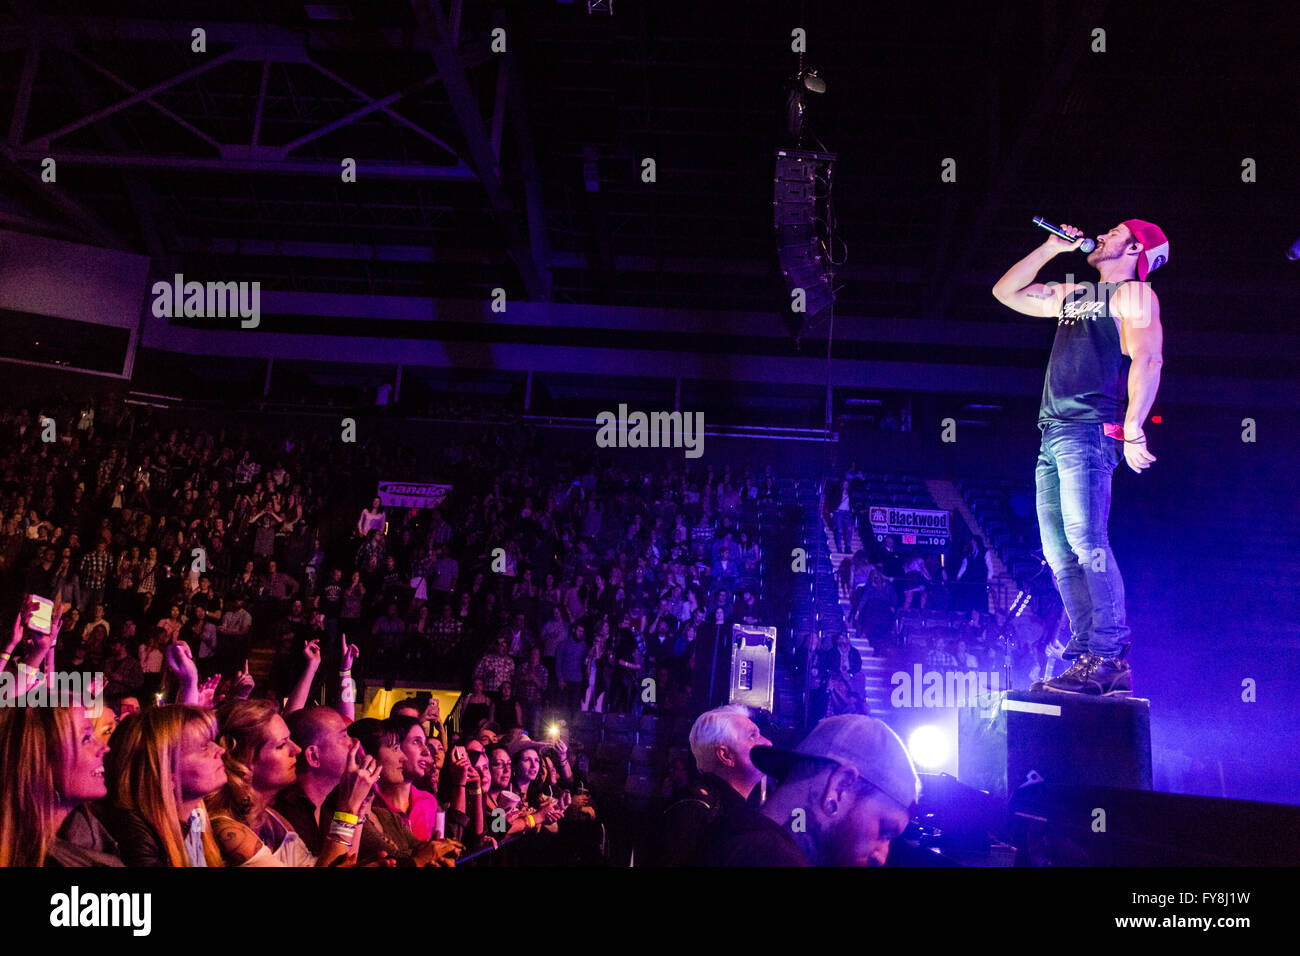 Kip Moore during his Wild Ones @ Abbotsford Centre in Abbotsford, BC on February 20th 2016 - Stock Image